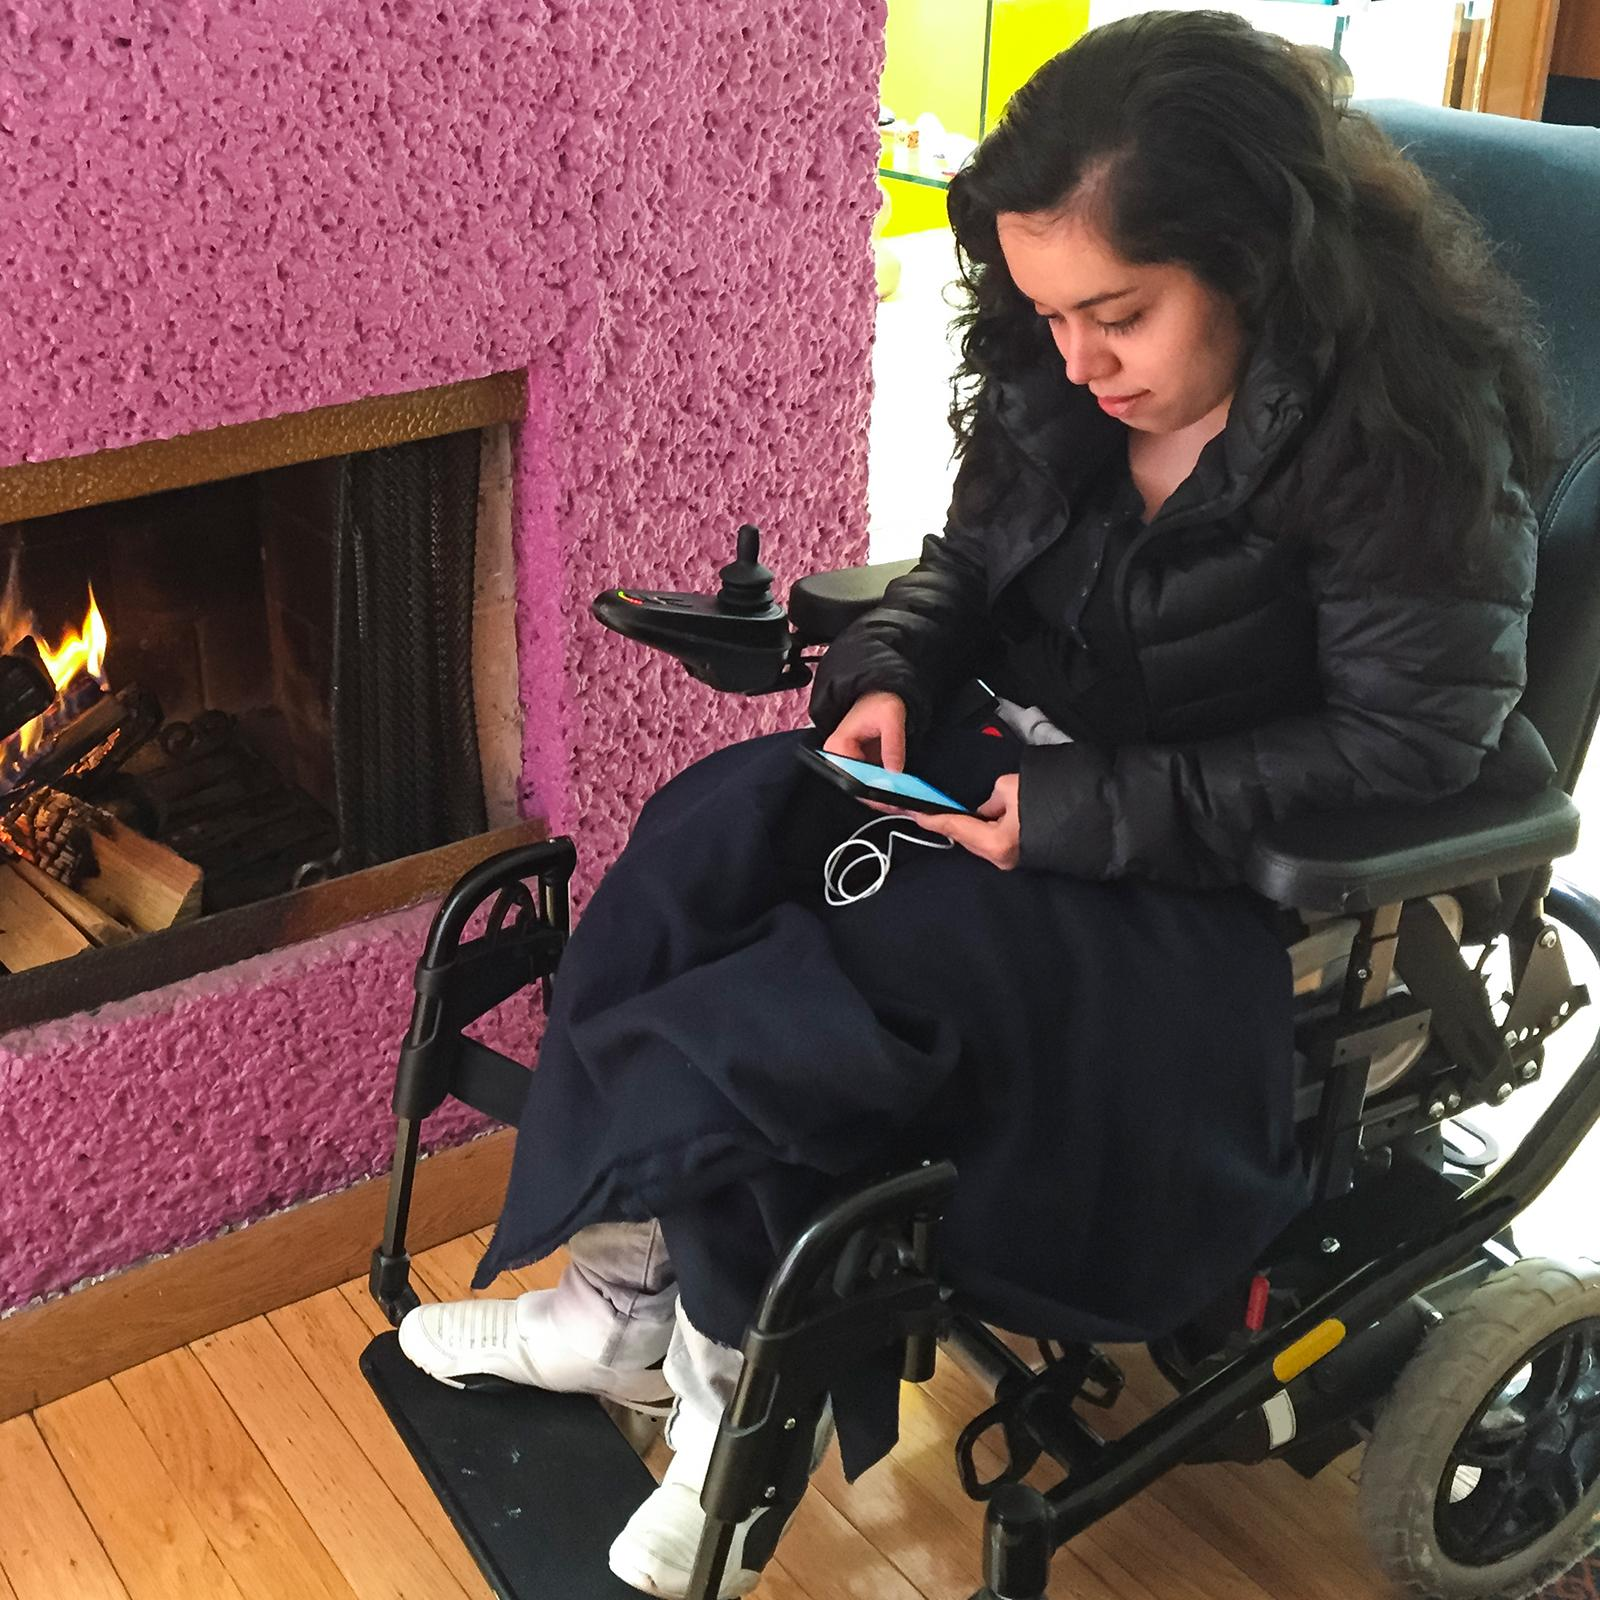 A young woman in a wheelchair looking at her mobile phone